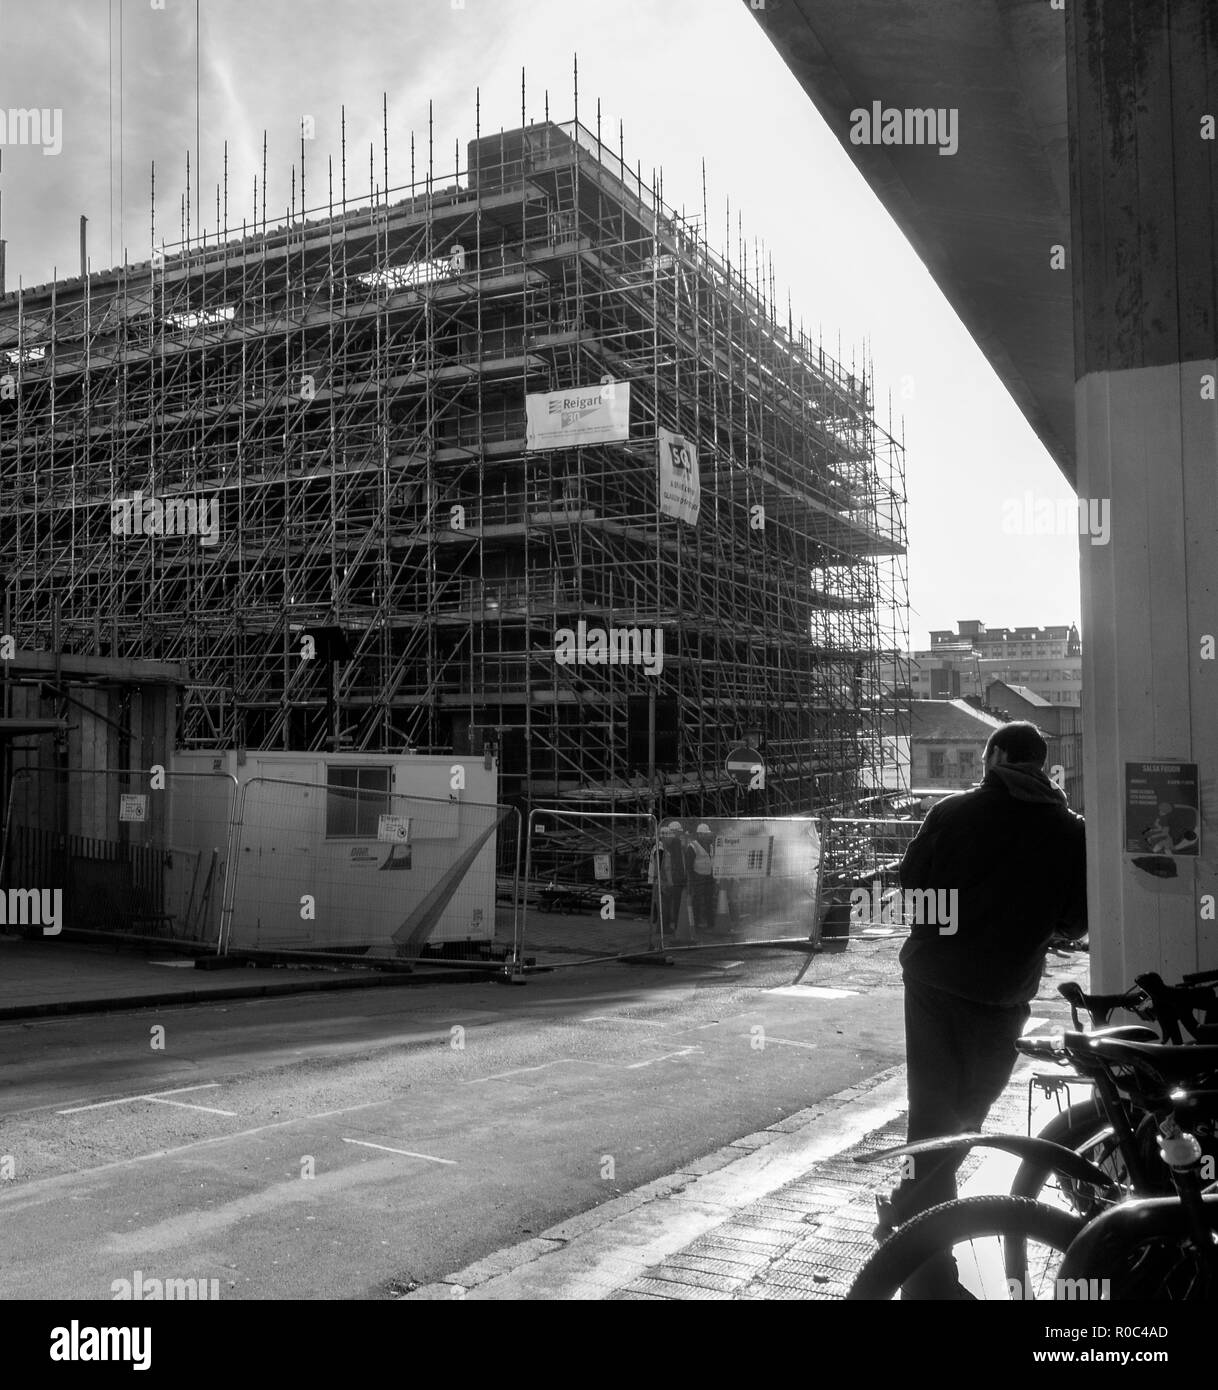 GLASGOW, SCOTLAND - NOVEMBER 2nd 2018: A black and white photograph of a man leaning on a wall while workers work on the site of Glasgow School of Art - Stock Image